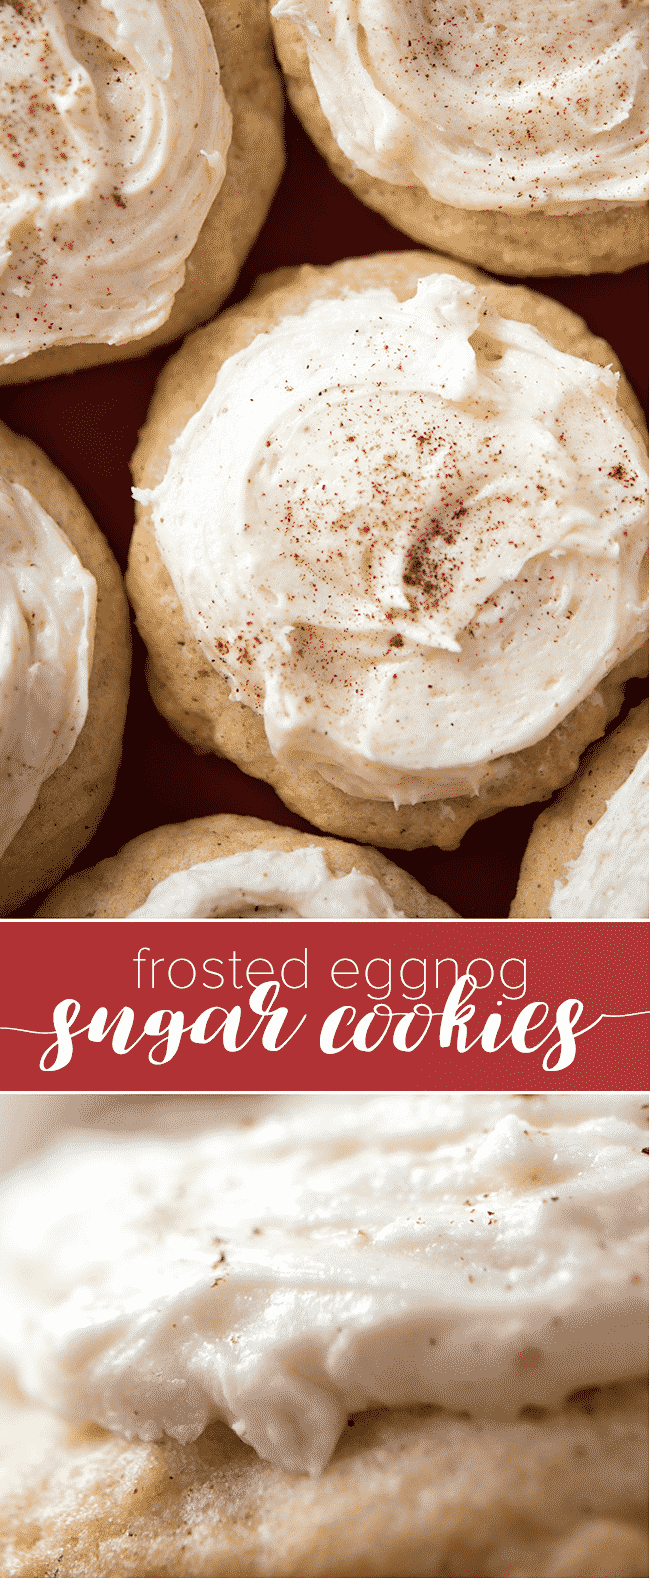 Frosted Eggnogg Sugar Cookies - These tender and delicious eggnog cookies will melt in your mouth this holiday season!